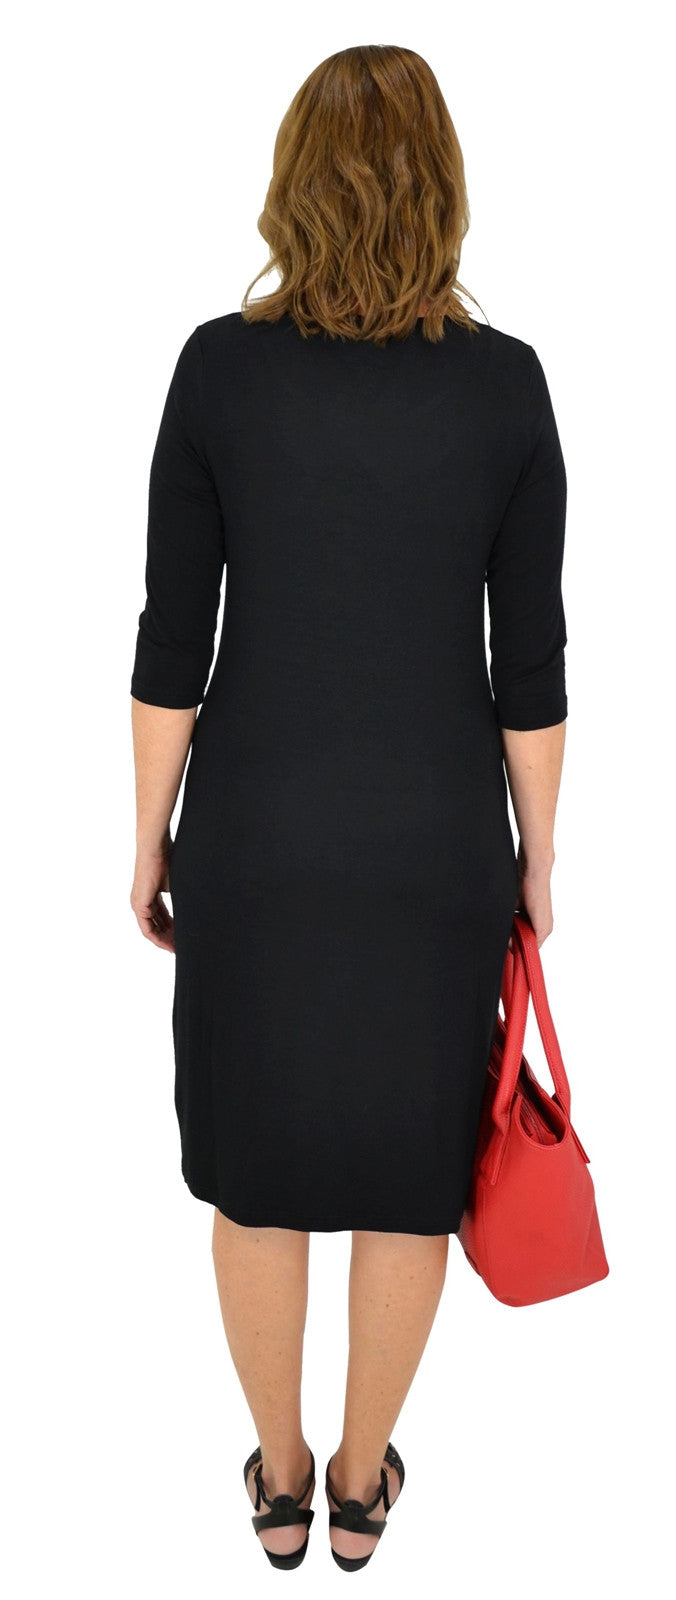 Black Long Tunic Dress - I Love Tunics @ www.ilovetunics.com